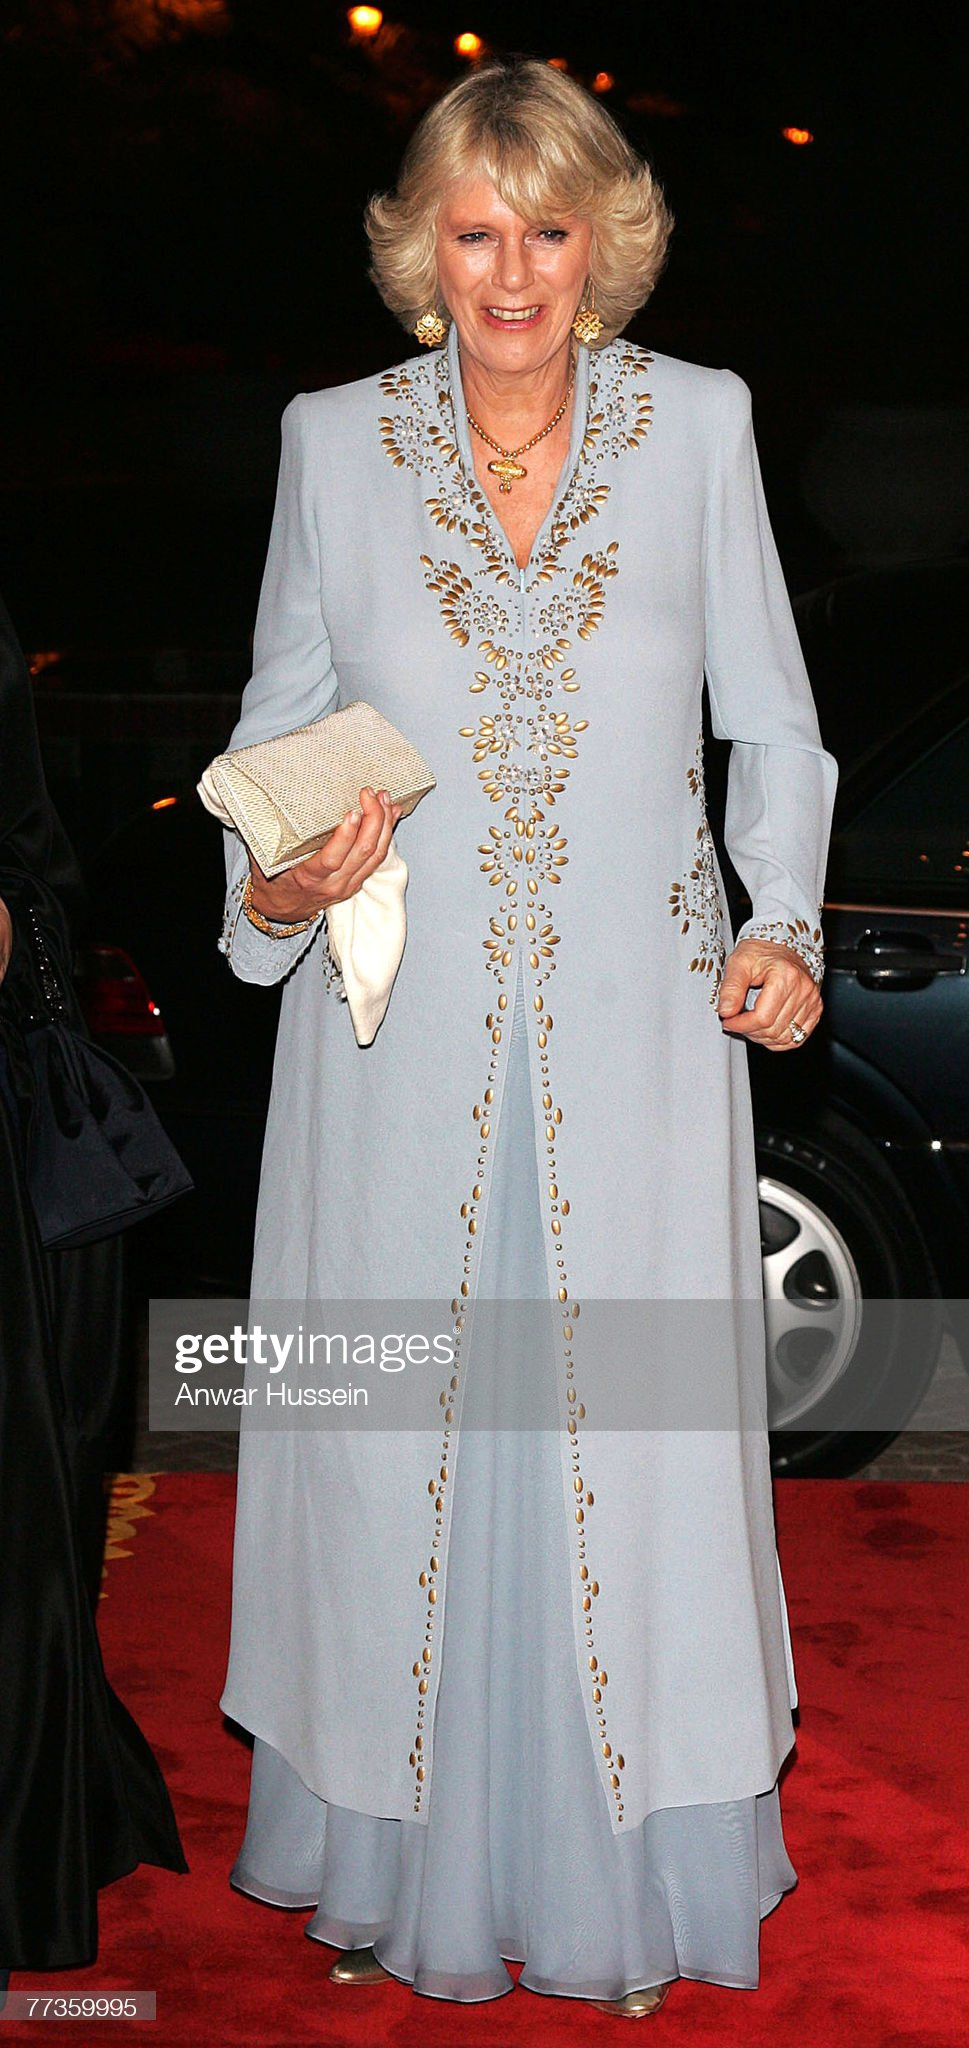 HRH Prince Charles and the Duchess of Cornwall Visit Bahrain - February 25, 2007 : News Photo